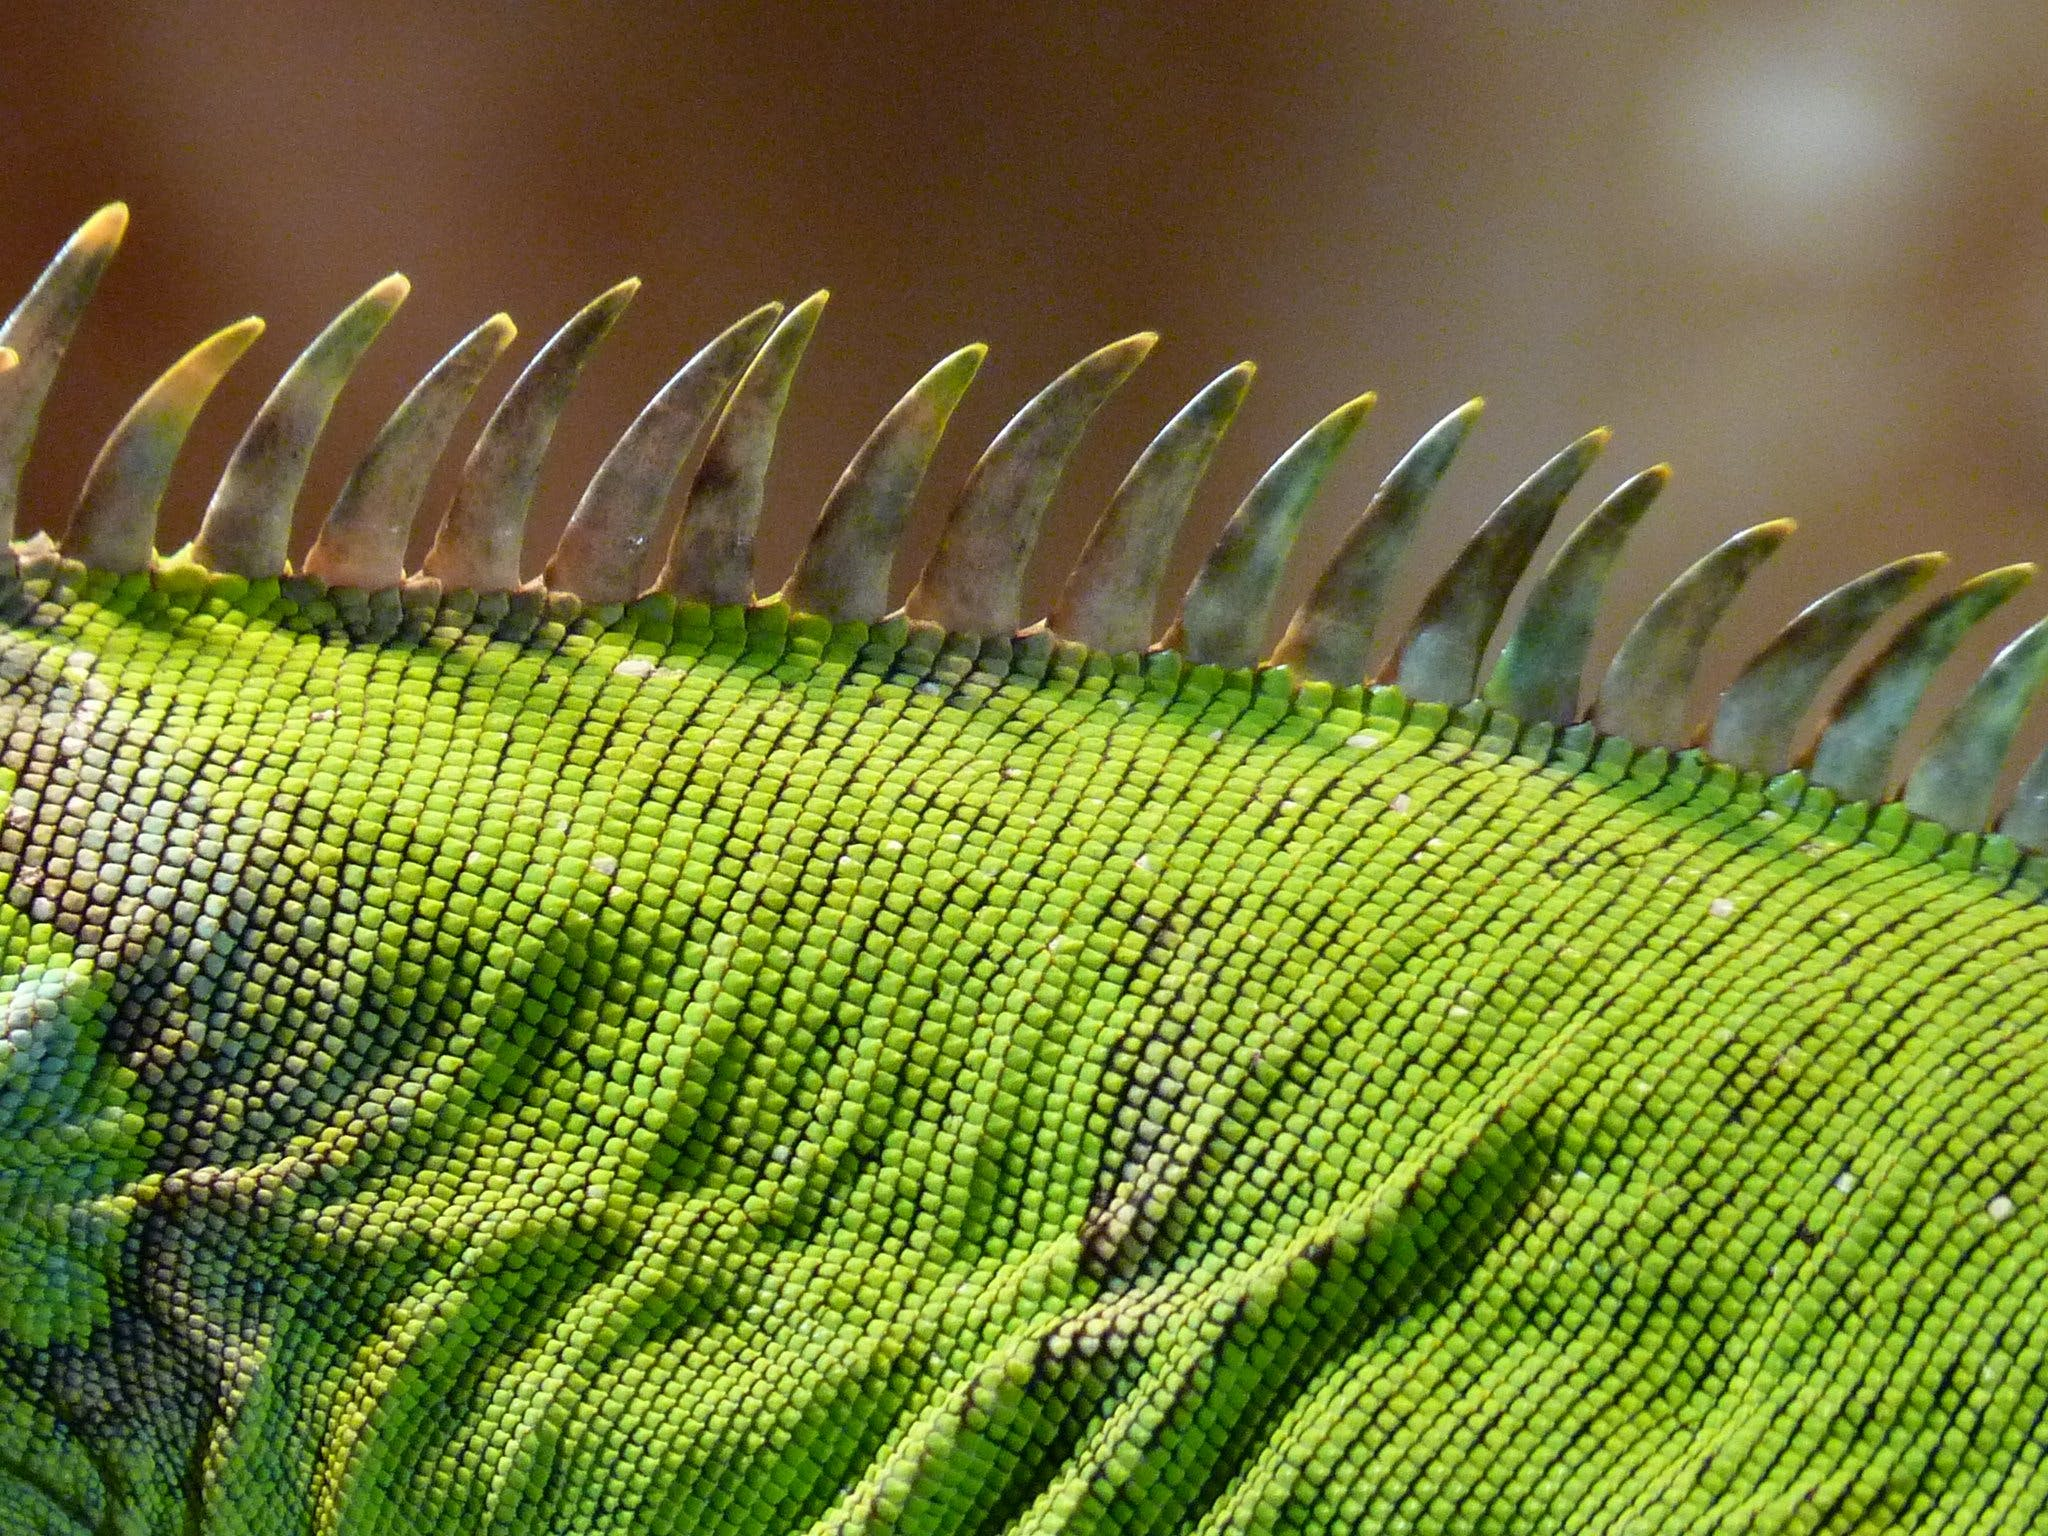 Shallow Focus Photography of Green and Black Animal Skin during Daytime